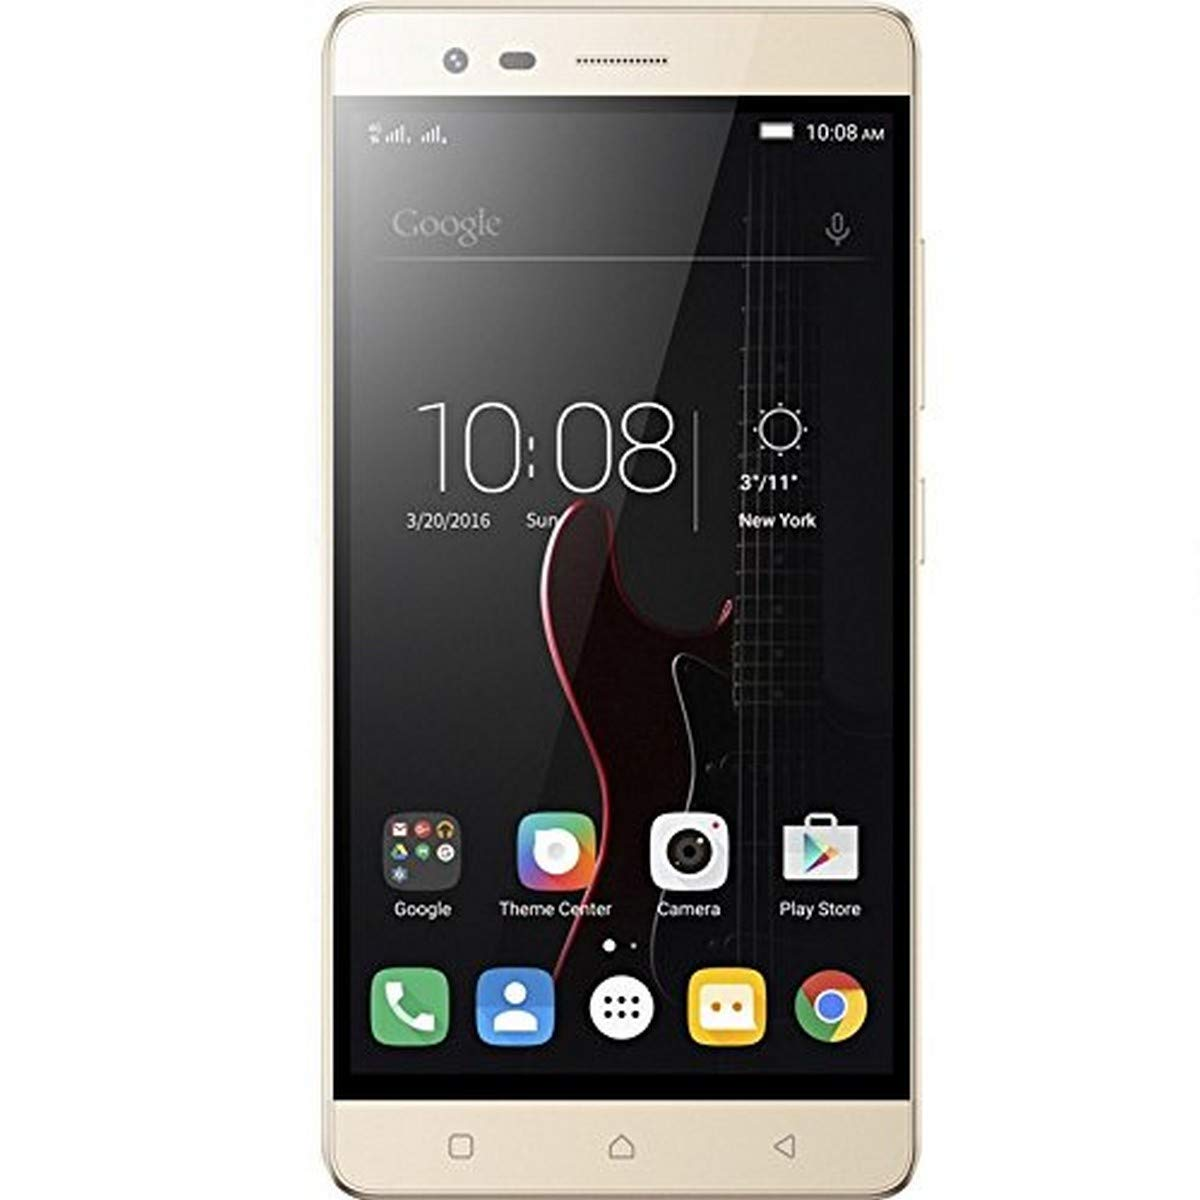 Renewed) Lenovo Vibe K5 Note A7020A48 (Gold, 32GB): Amazon in